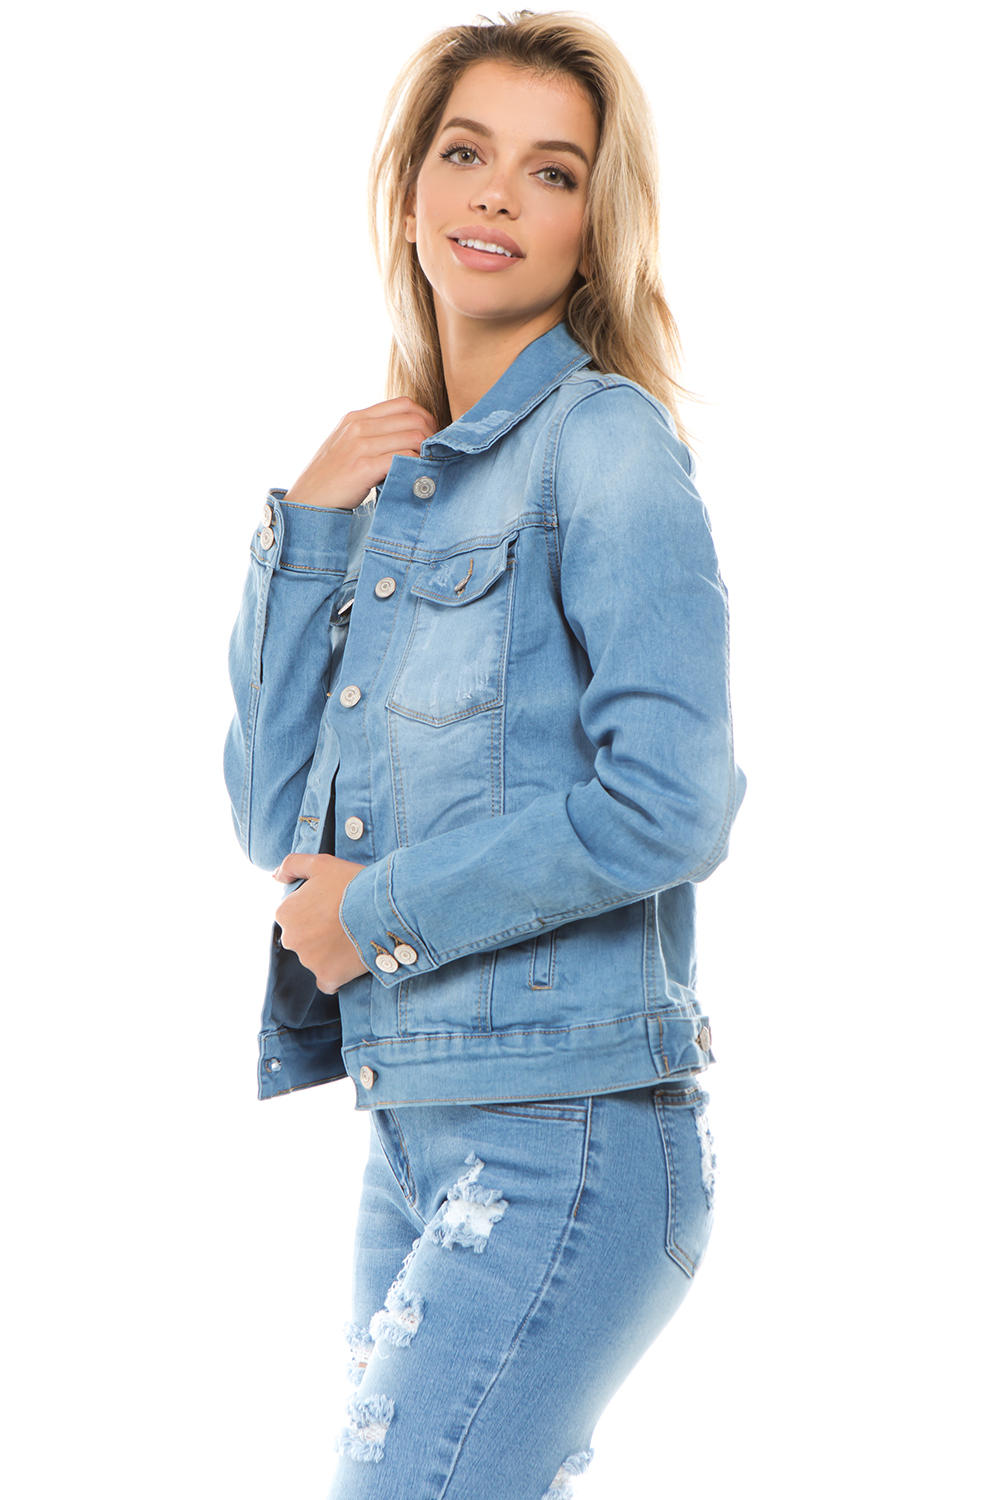 Women-039-s-Juniors-Boyfriend-Premium-Denim-Jackets-Long-Sleeve-Jean-Coats thumbnail 5